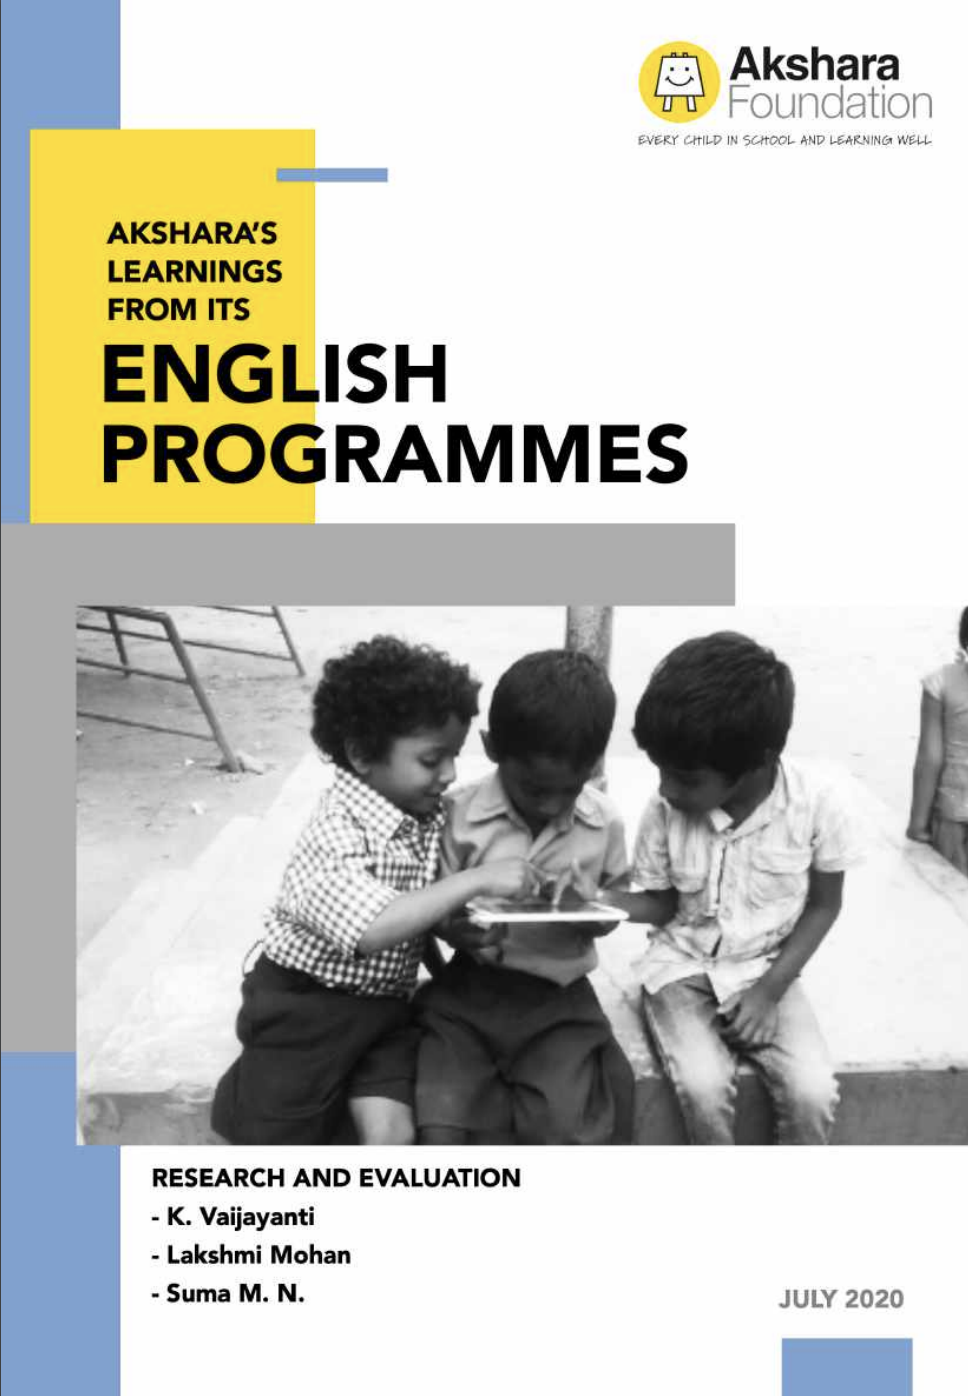 English Programmes Report 2020